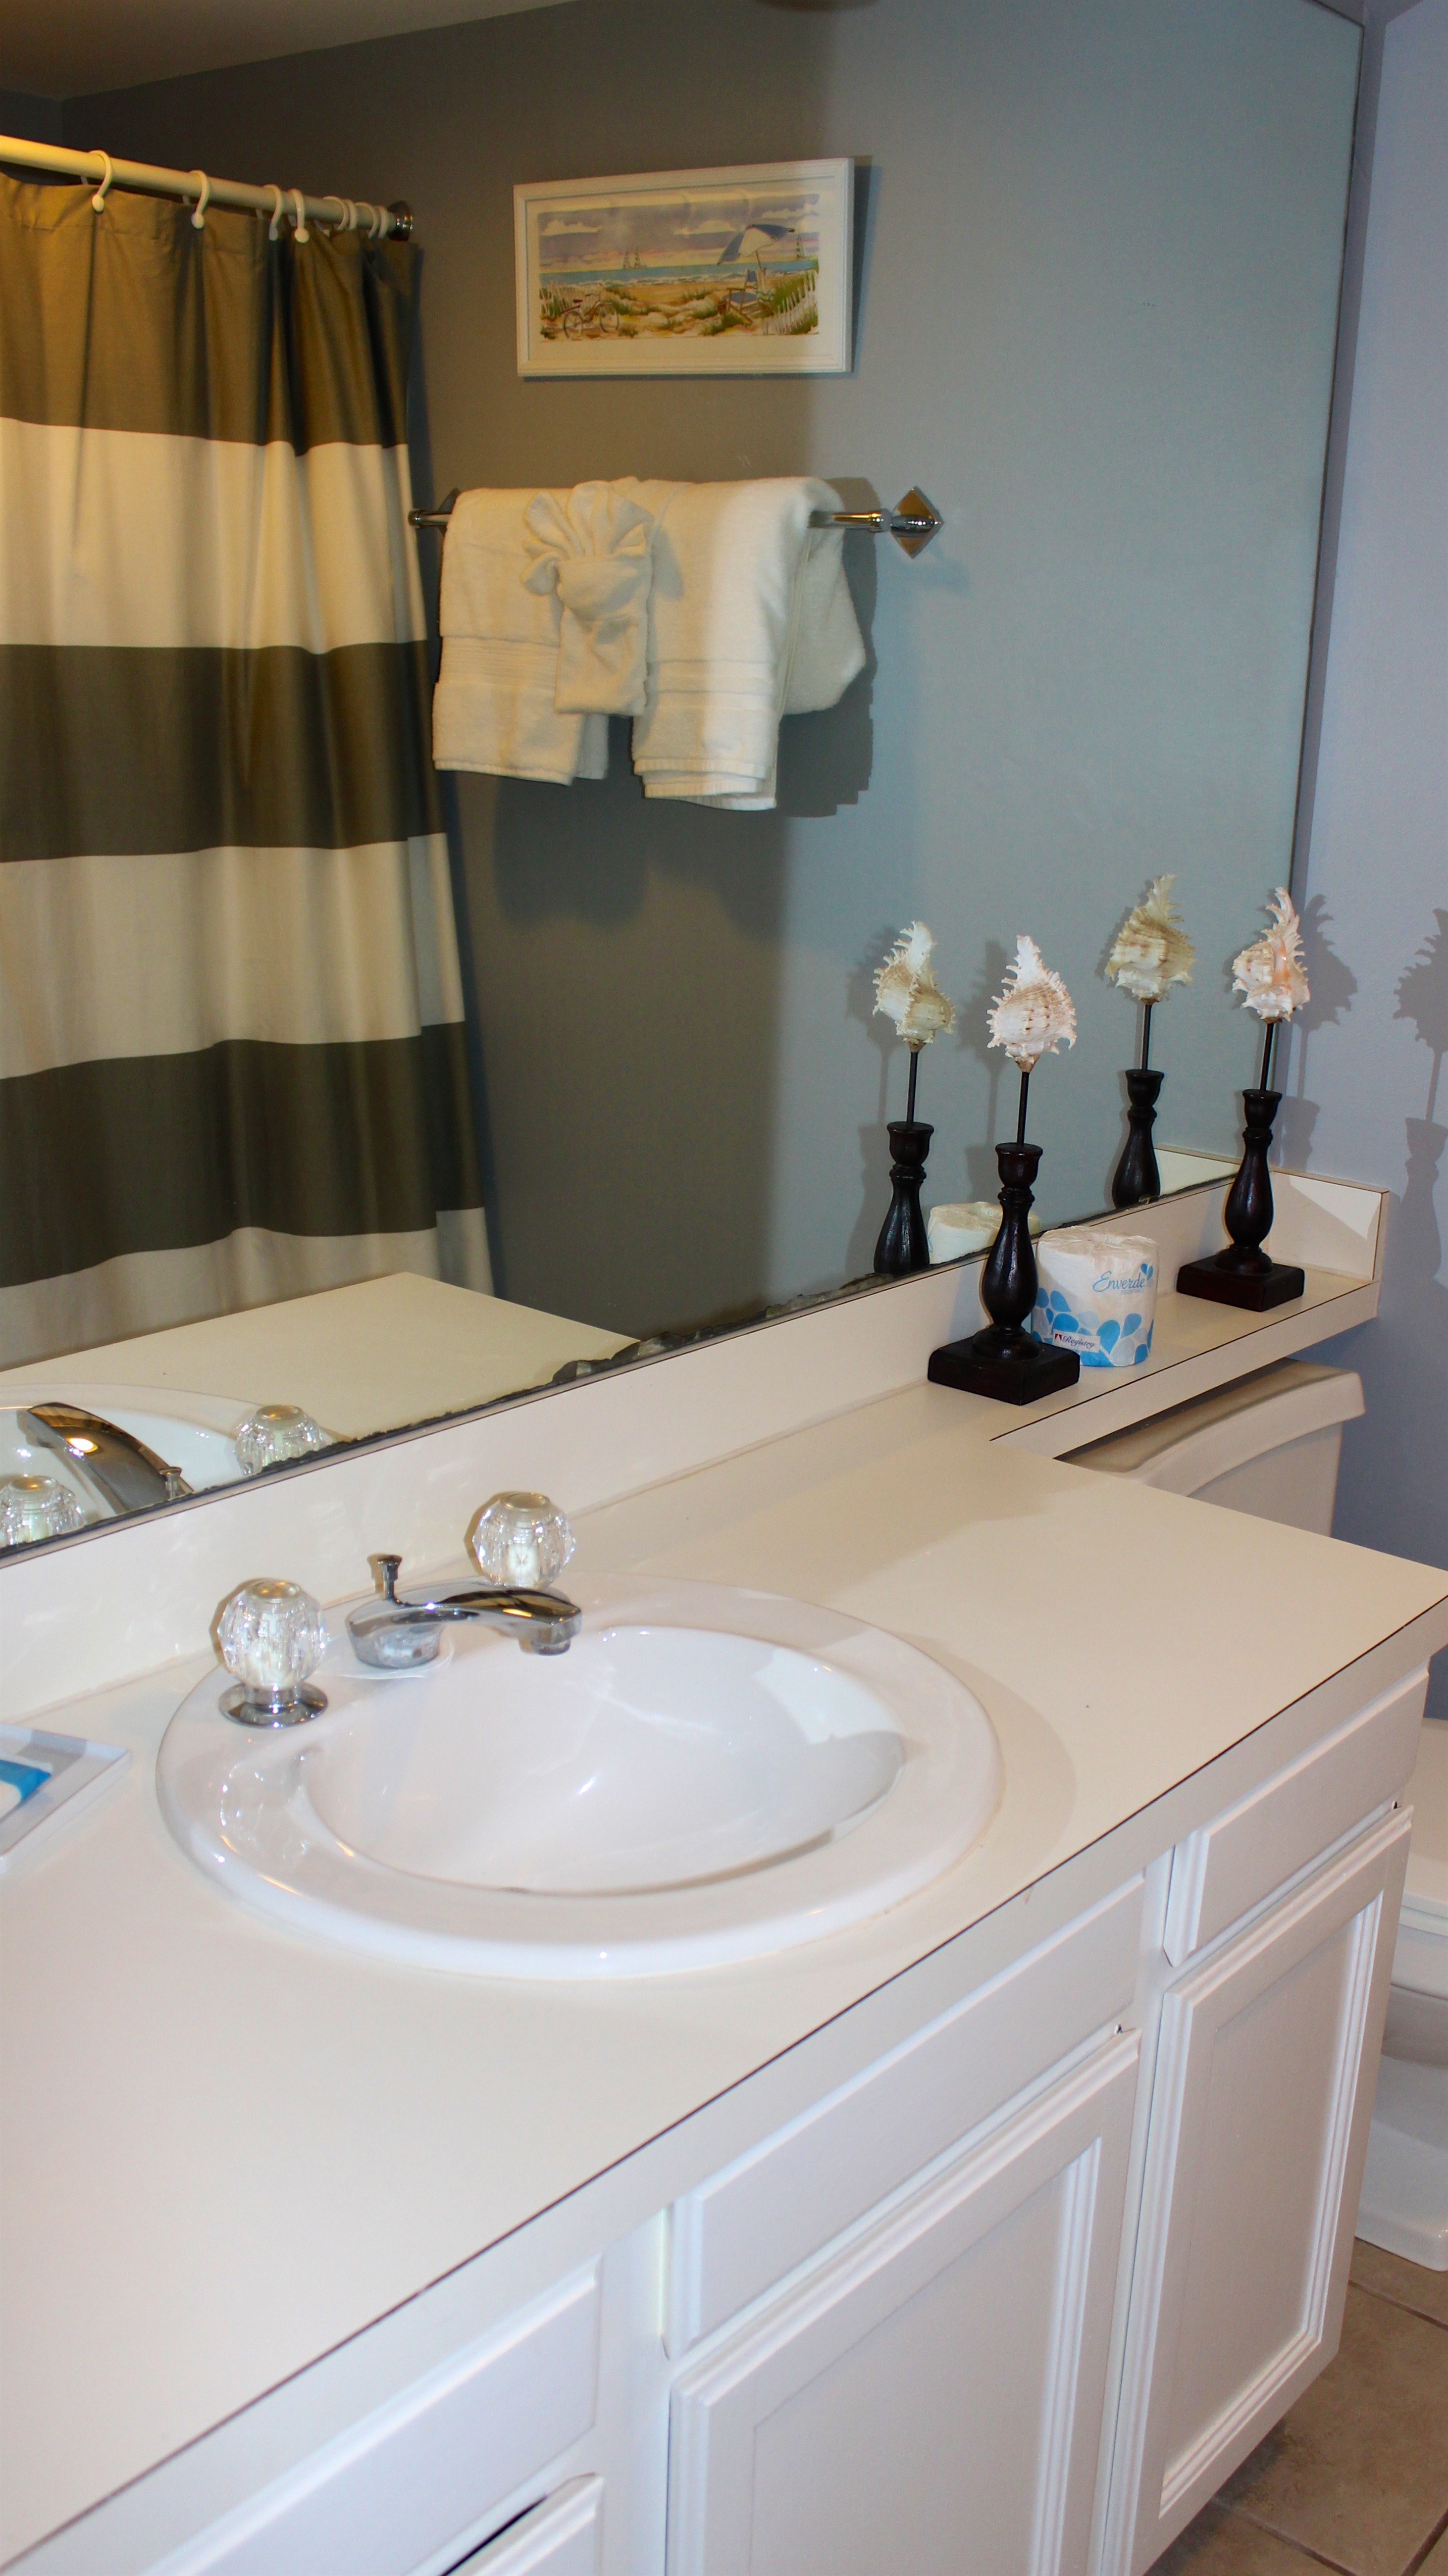 The hall bath has tile flooring, wide vanity and shower/tub.